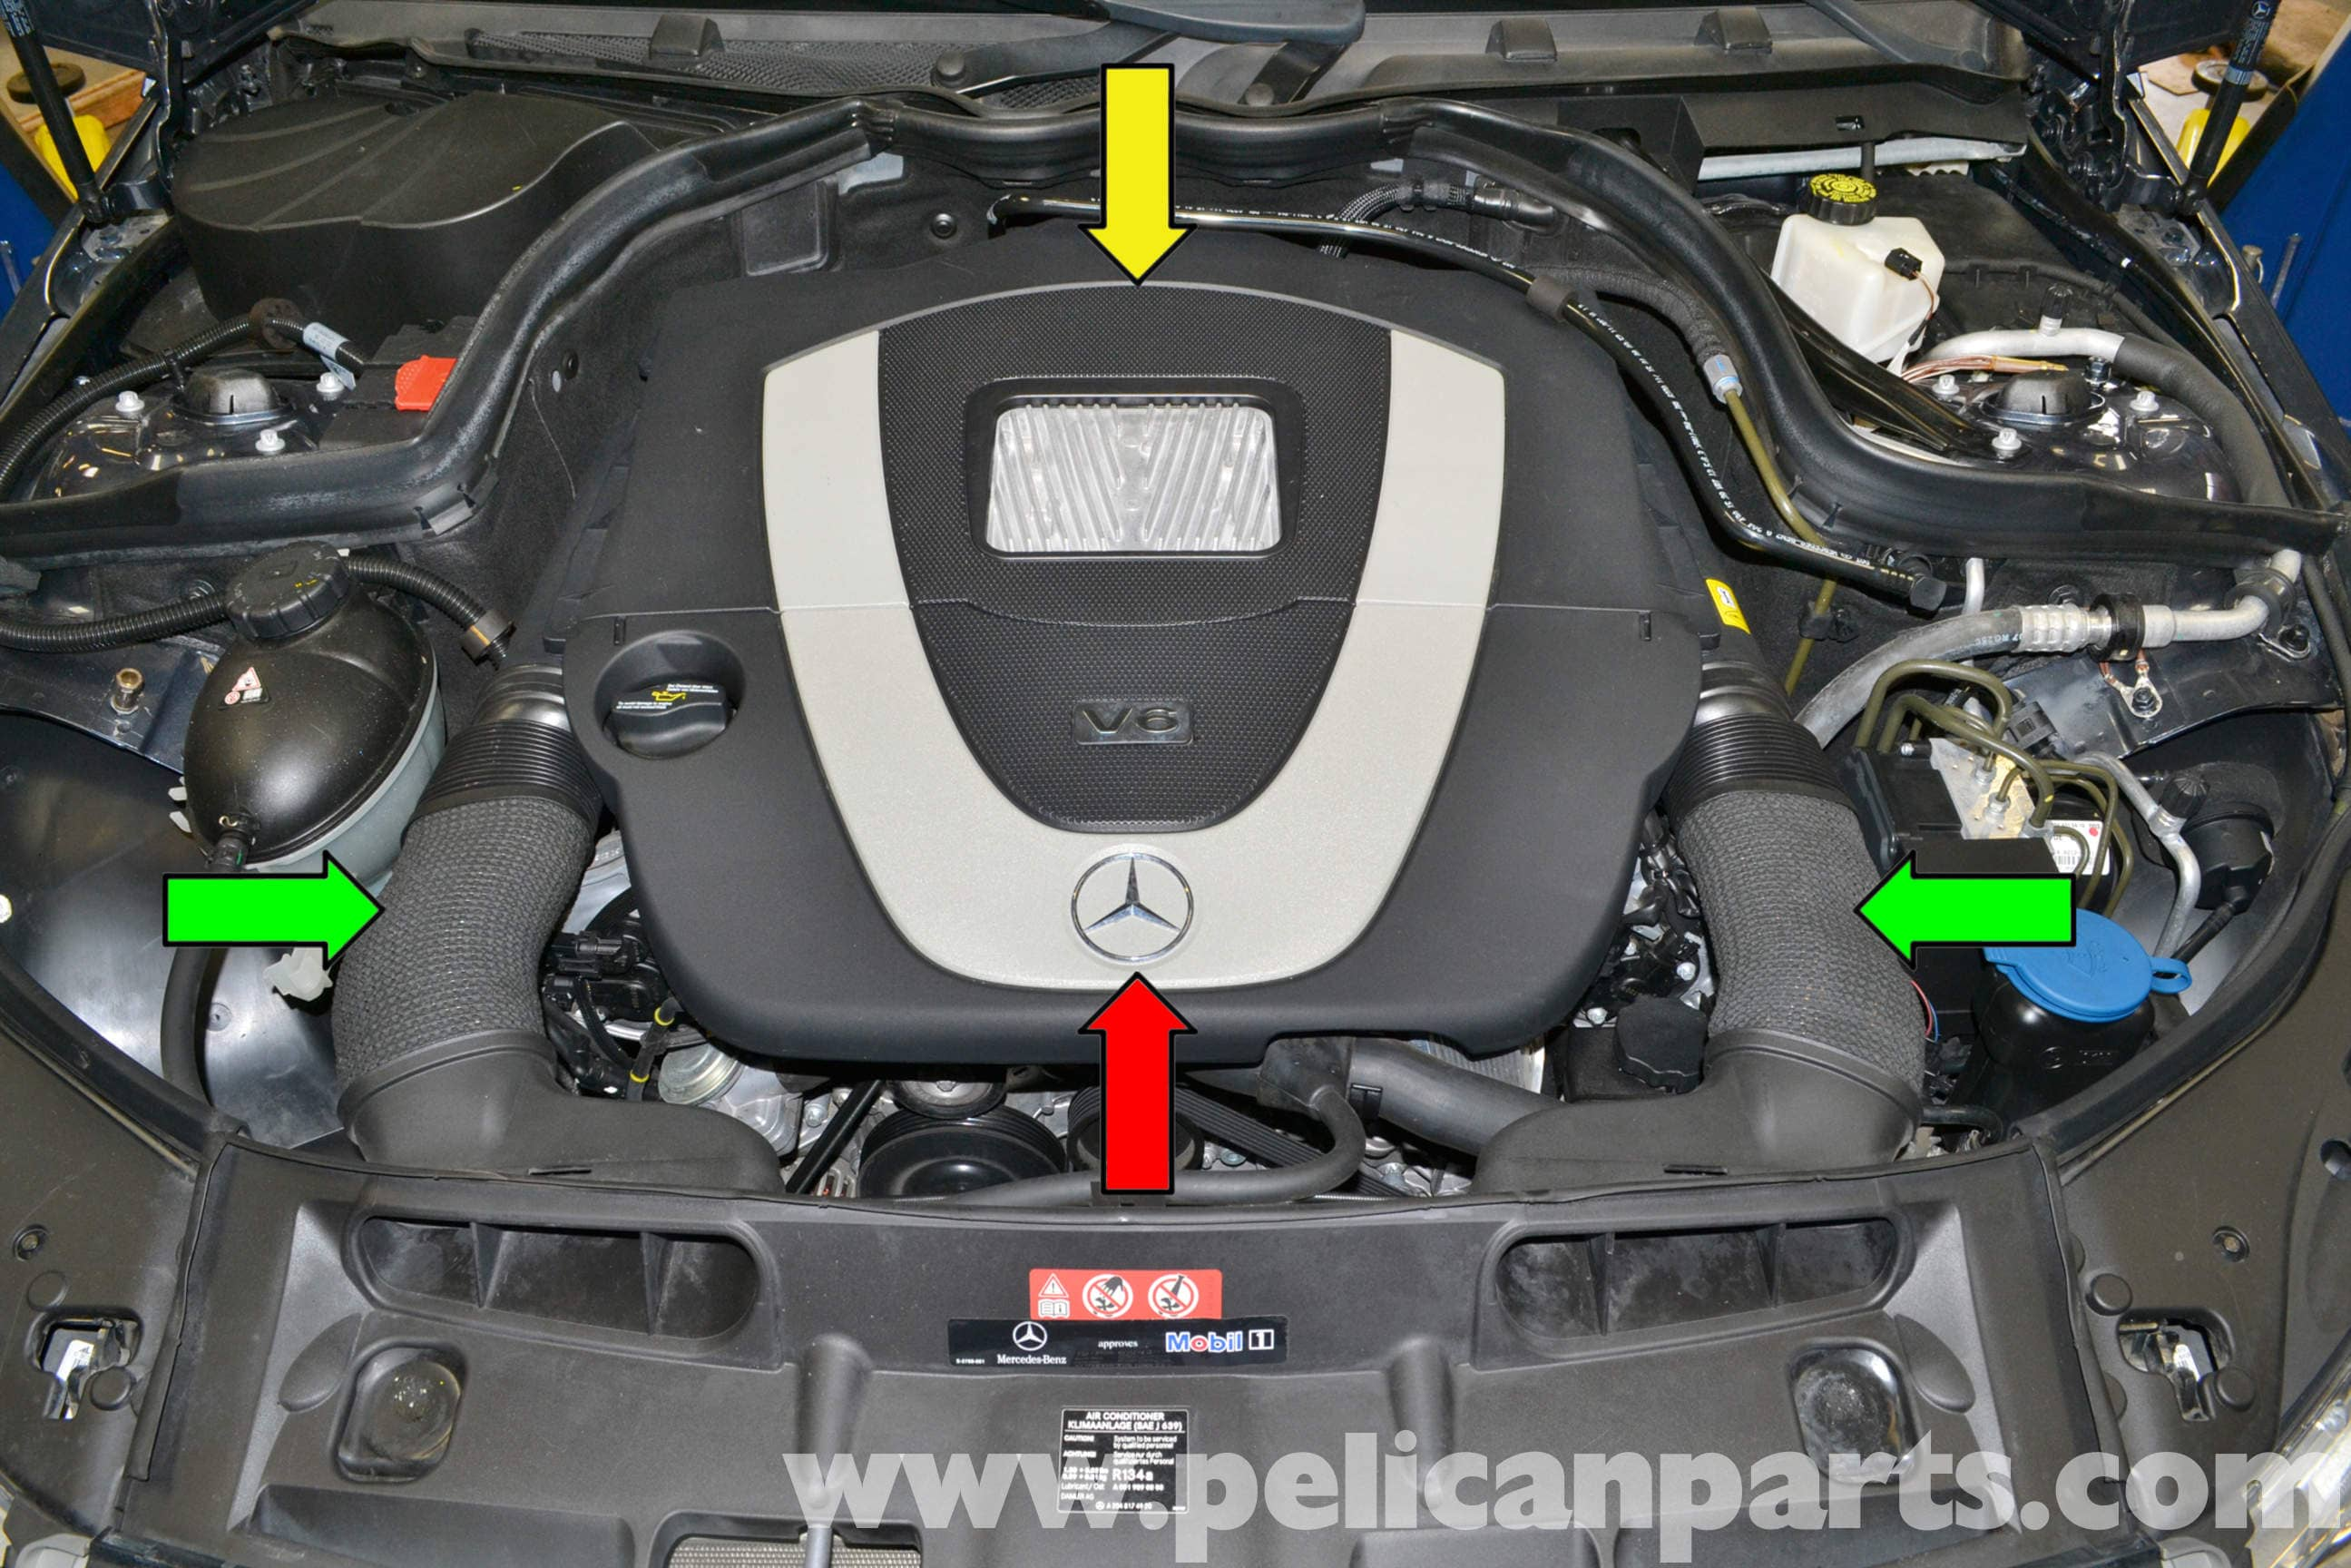 mercedes-benz w204 coolant temperature sensor replacement ... c300 mercedes engine coolant diagram engine coolant diagram